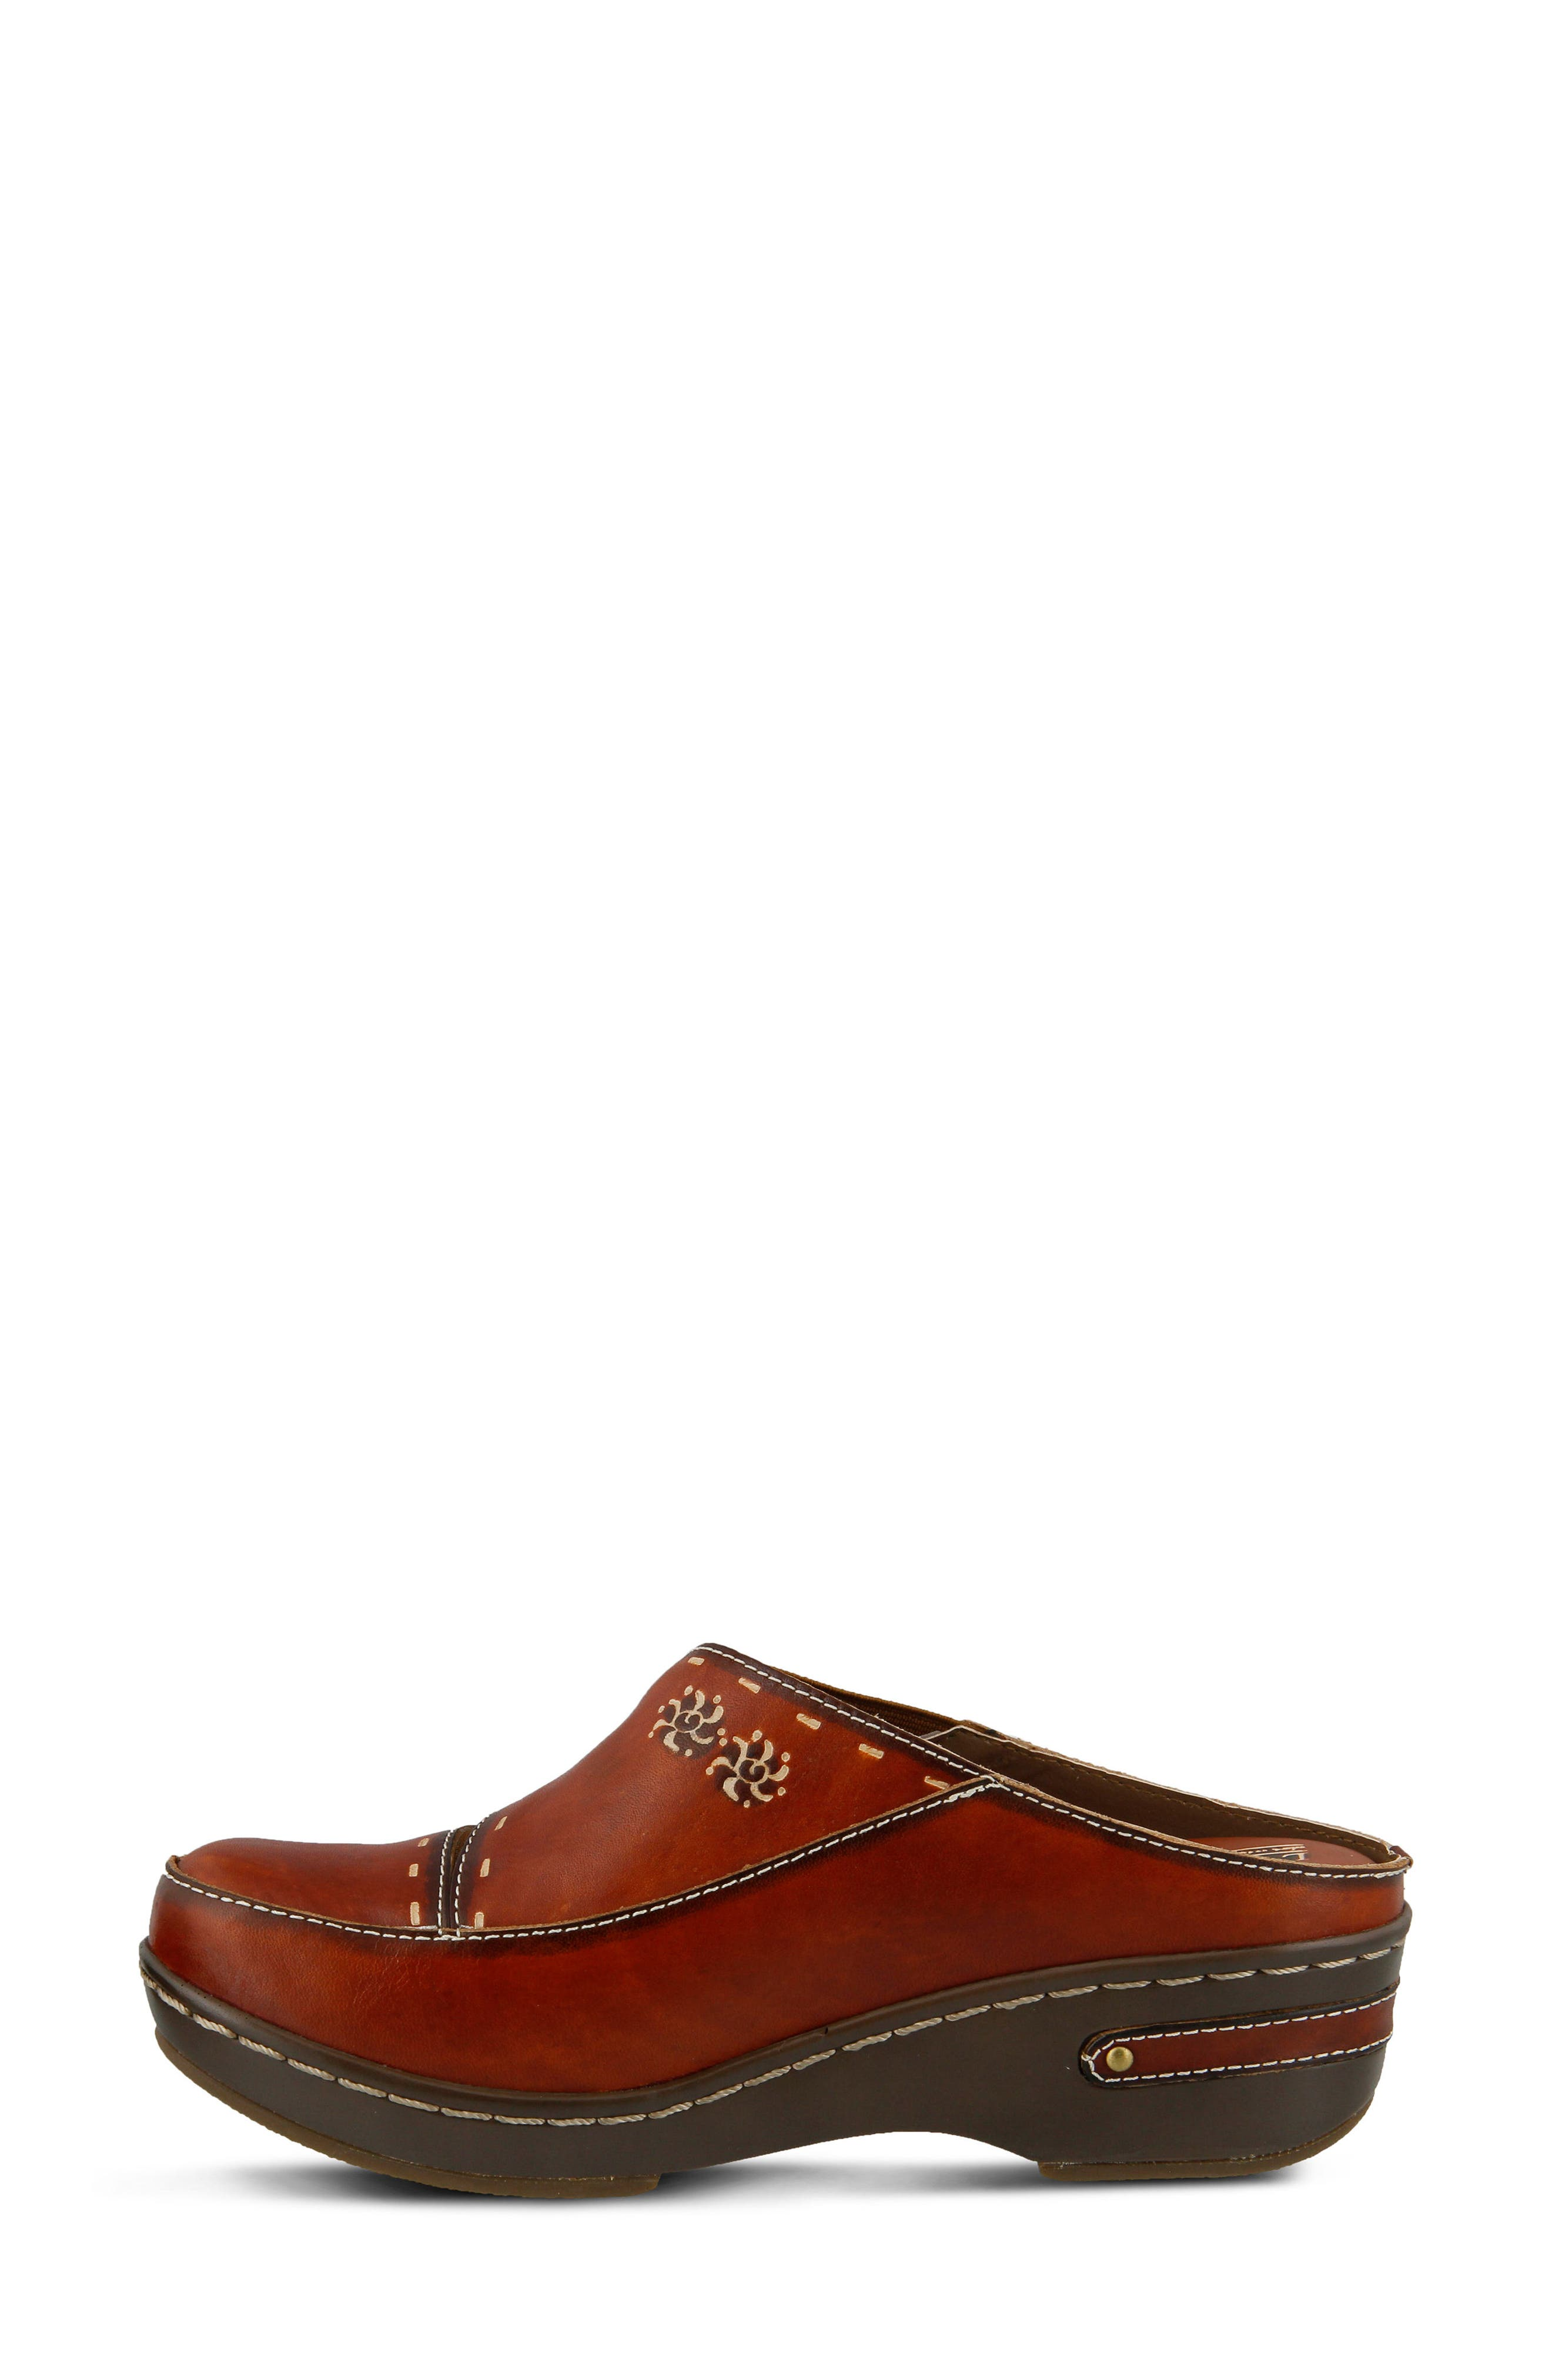 L'Artiste Chino Clog,                             Alternate thumbnail 4, color,                             Camel Leather